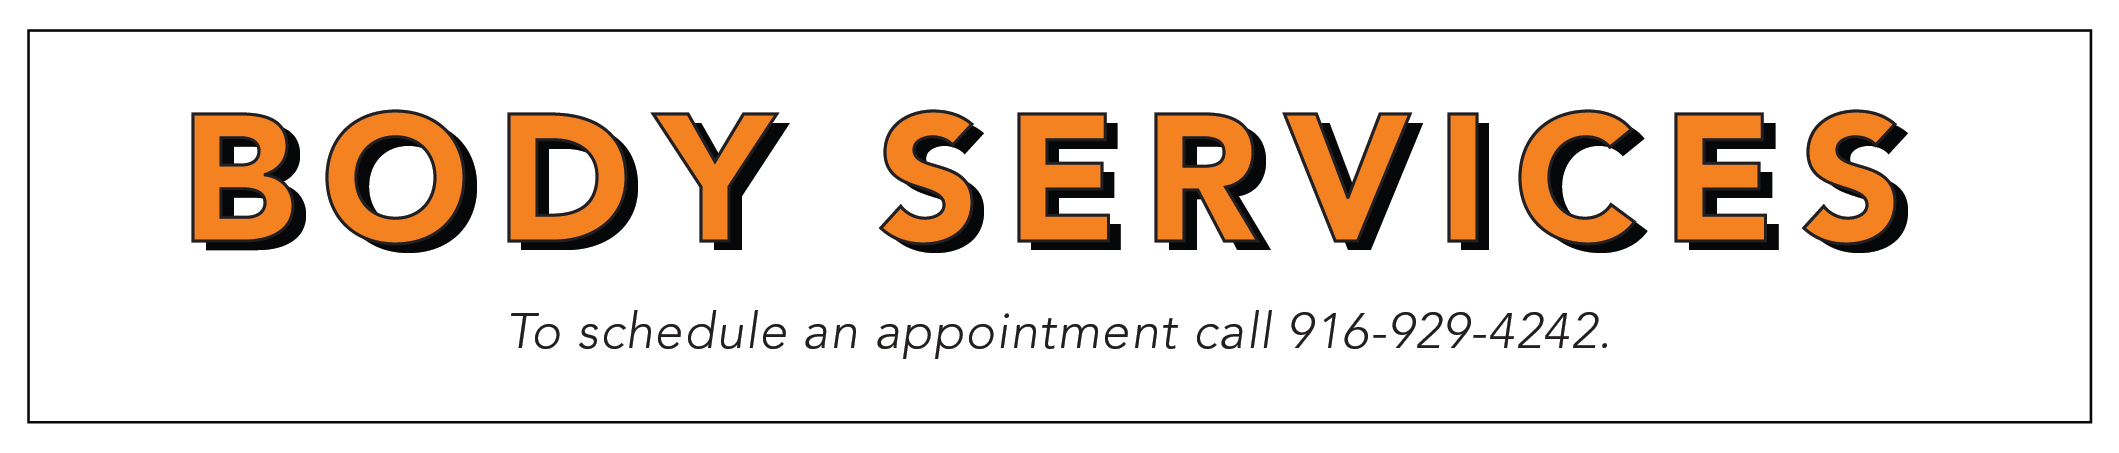 Text on graphic says Body Services. To schedule an appointment call 9 1 6 9 2 9 4 2 4 2